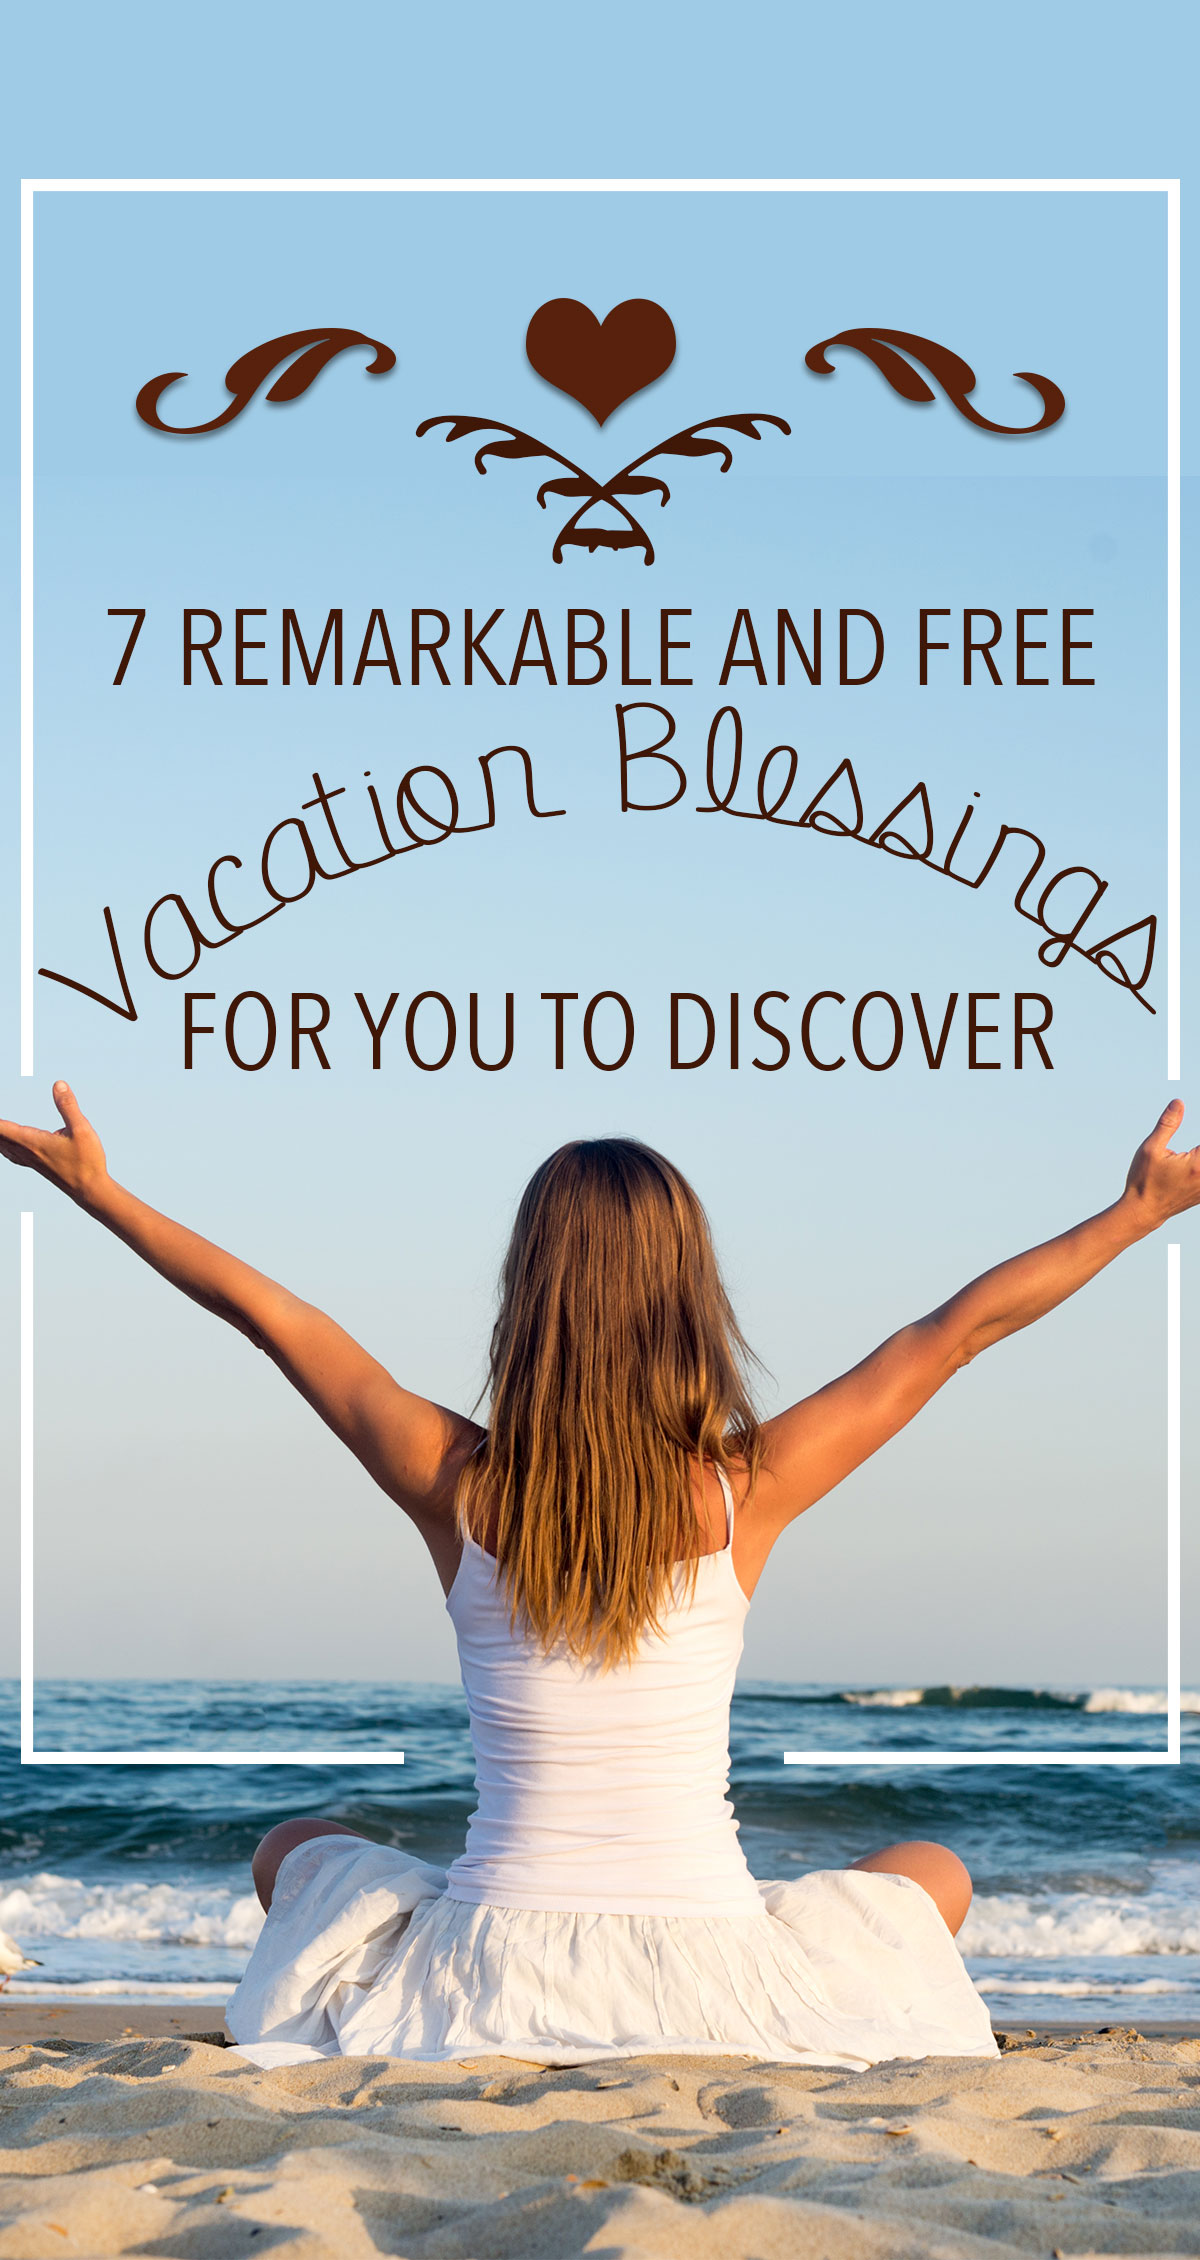 7 Remarkable and Free Vacation Blessings for You to Discover Pin